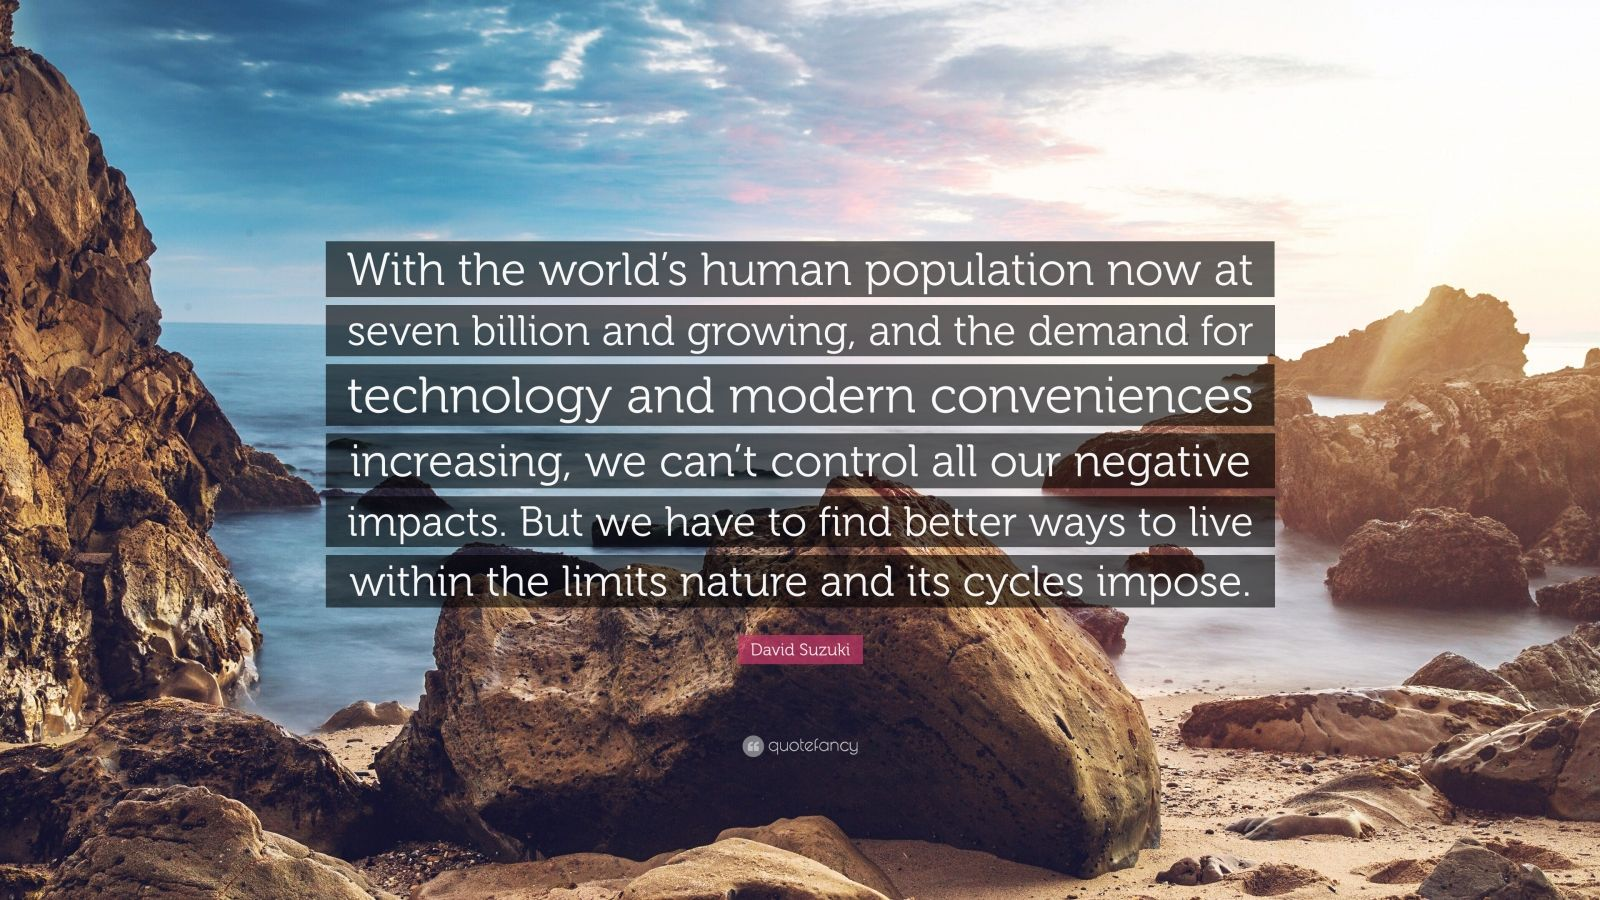 """David Suzuki Quote: """"With the world's human population now at seven billion and growing, and the demand for technology and modern conveniences increasing, we can't control all our negative impacts. But we have to find better ways to live within the limits nature and its cycles impose."""""""